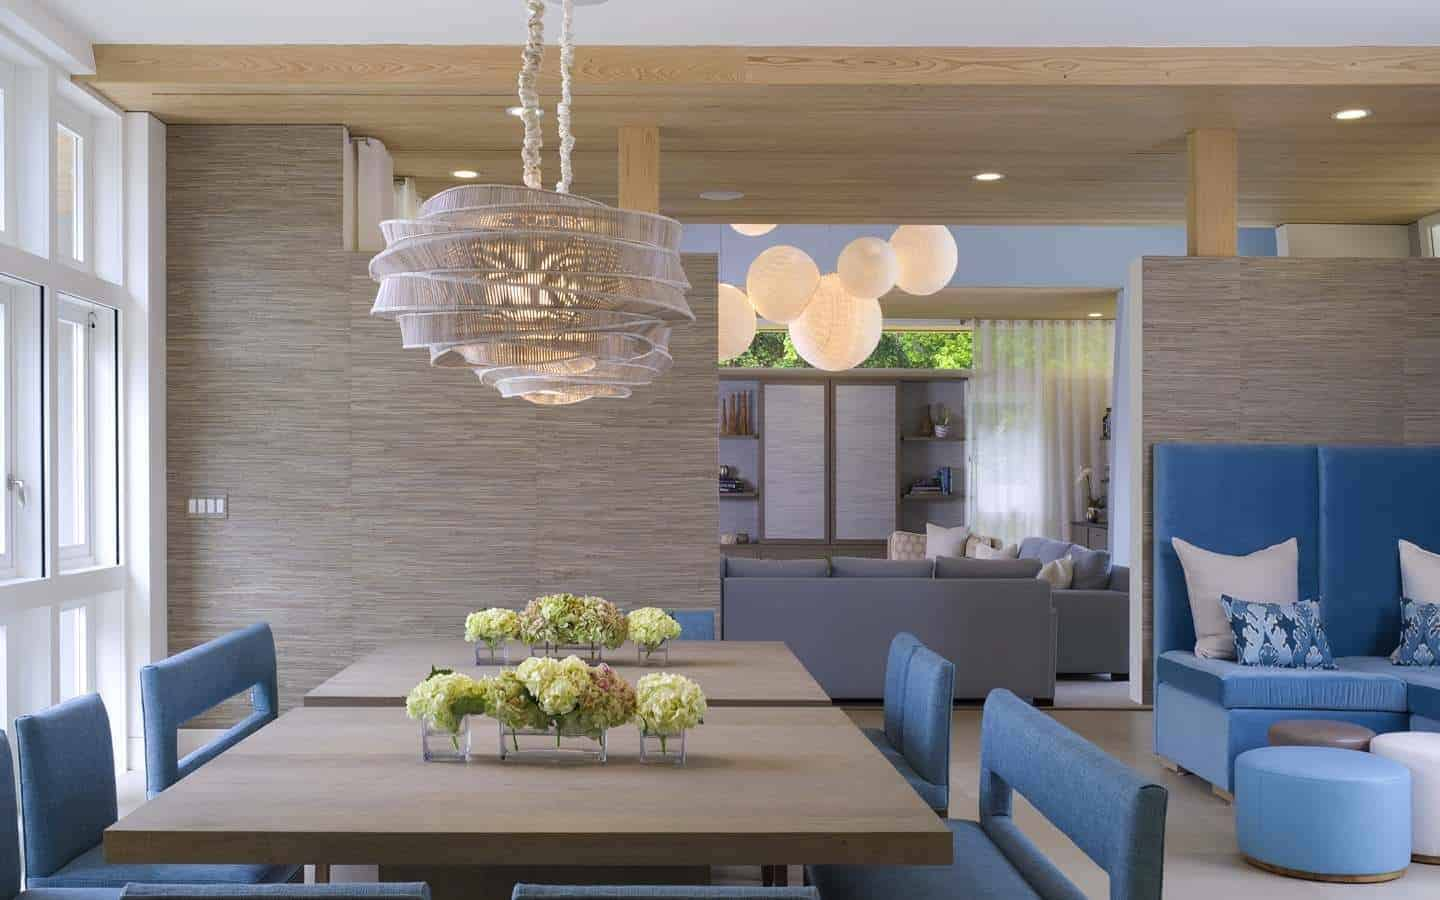 This airy and bright kitchen has a bare wooden ceiling paired with brown wooden walls that match the square dining tables topped with a peculiar pendant light with a rustic hood. These are contrasted by the blue velvet cushions of the chairs.